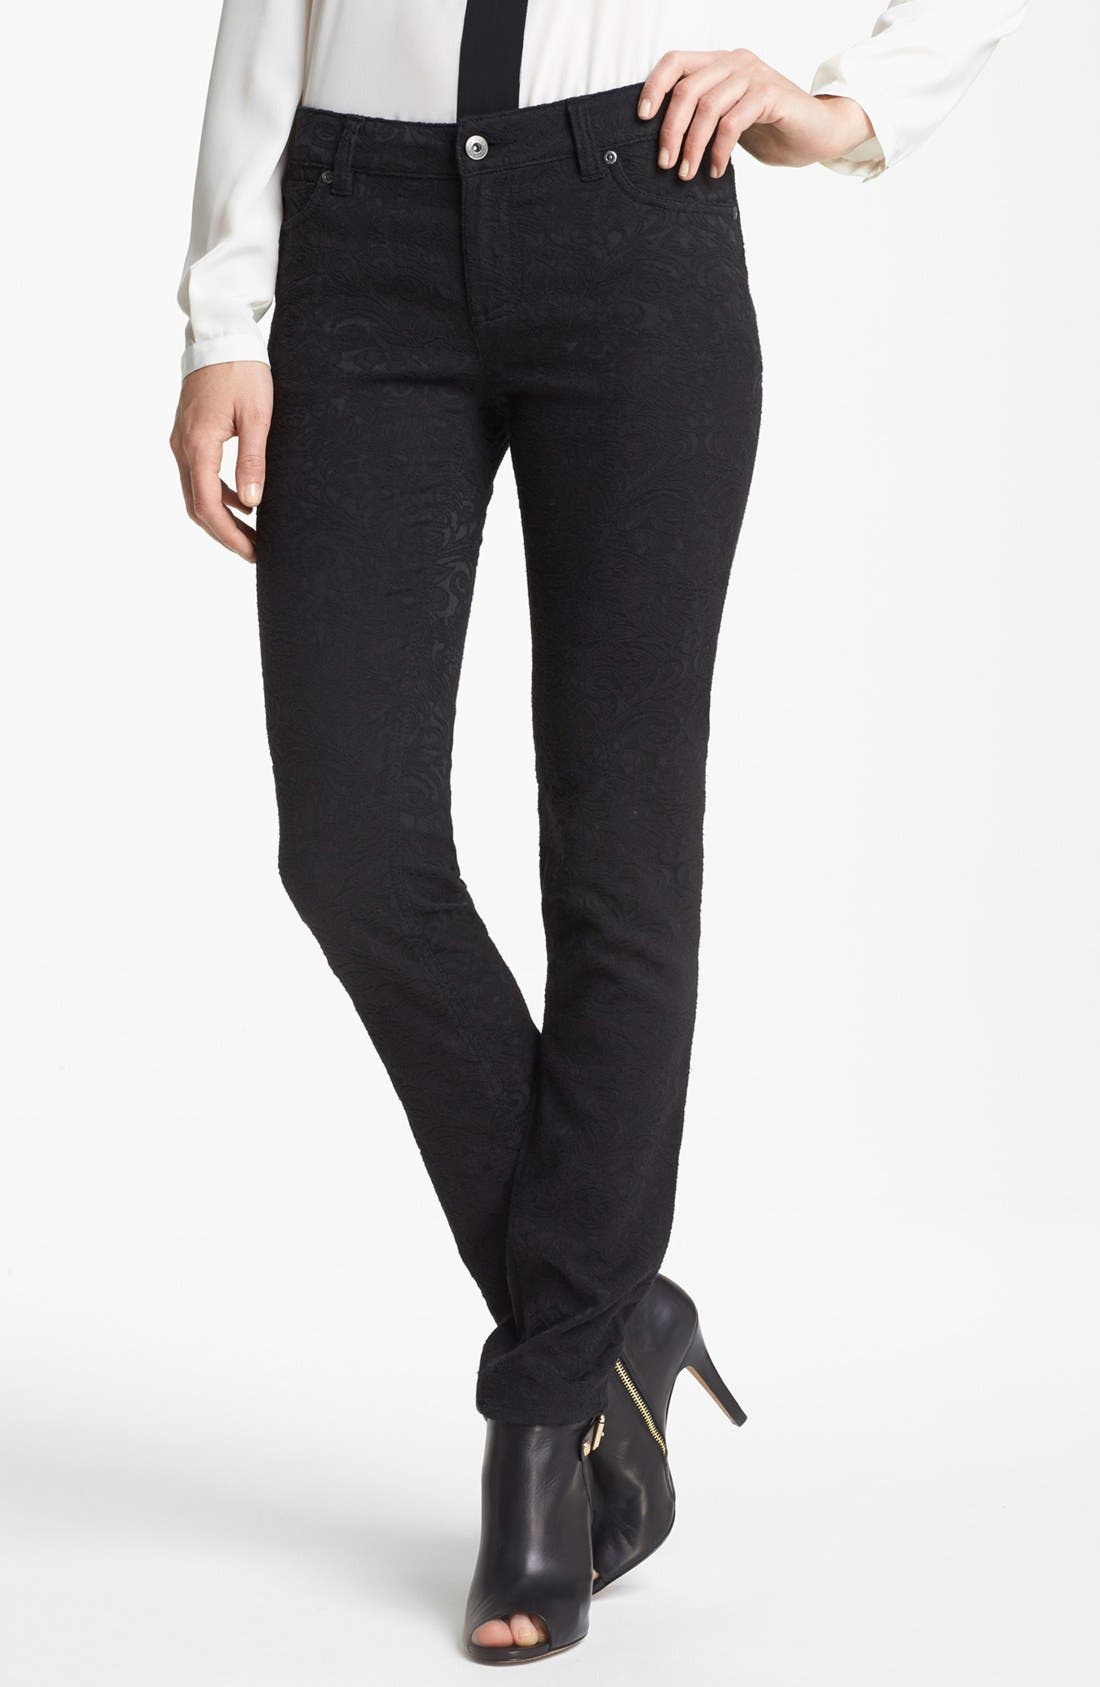 Alternate Image 1 Selected - Two by Vince Camuto Tonal Jacquard Jeans